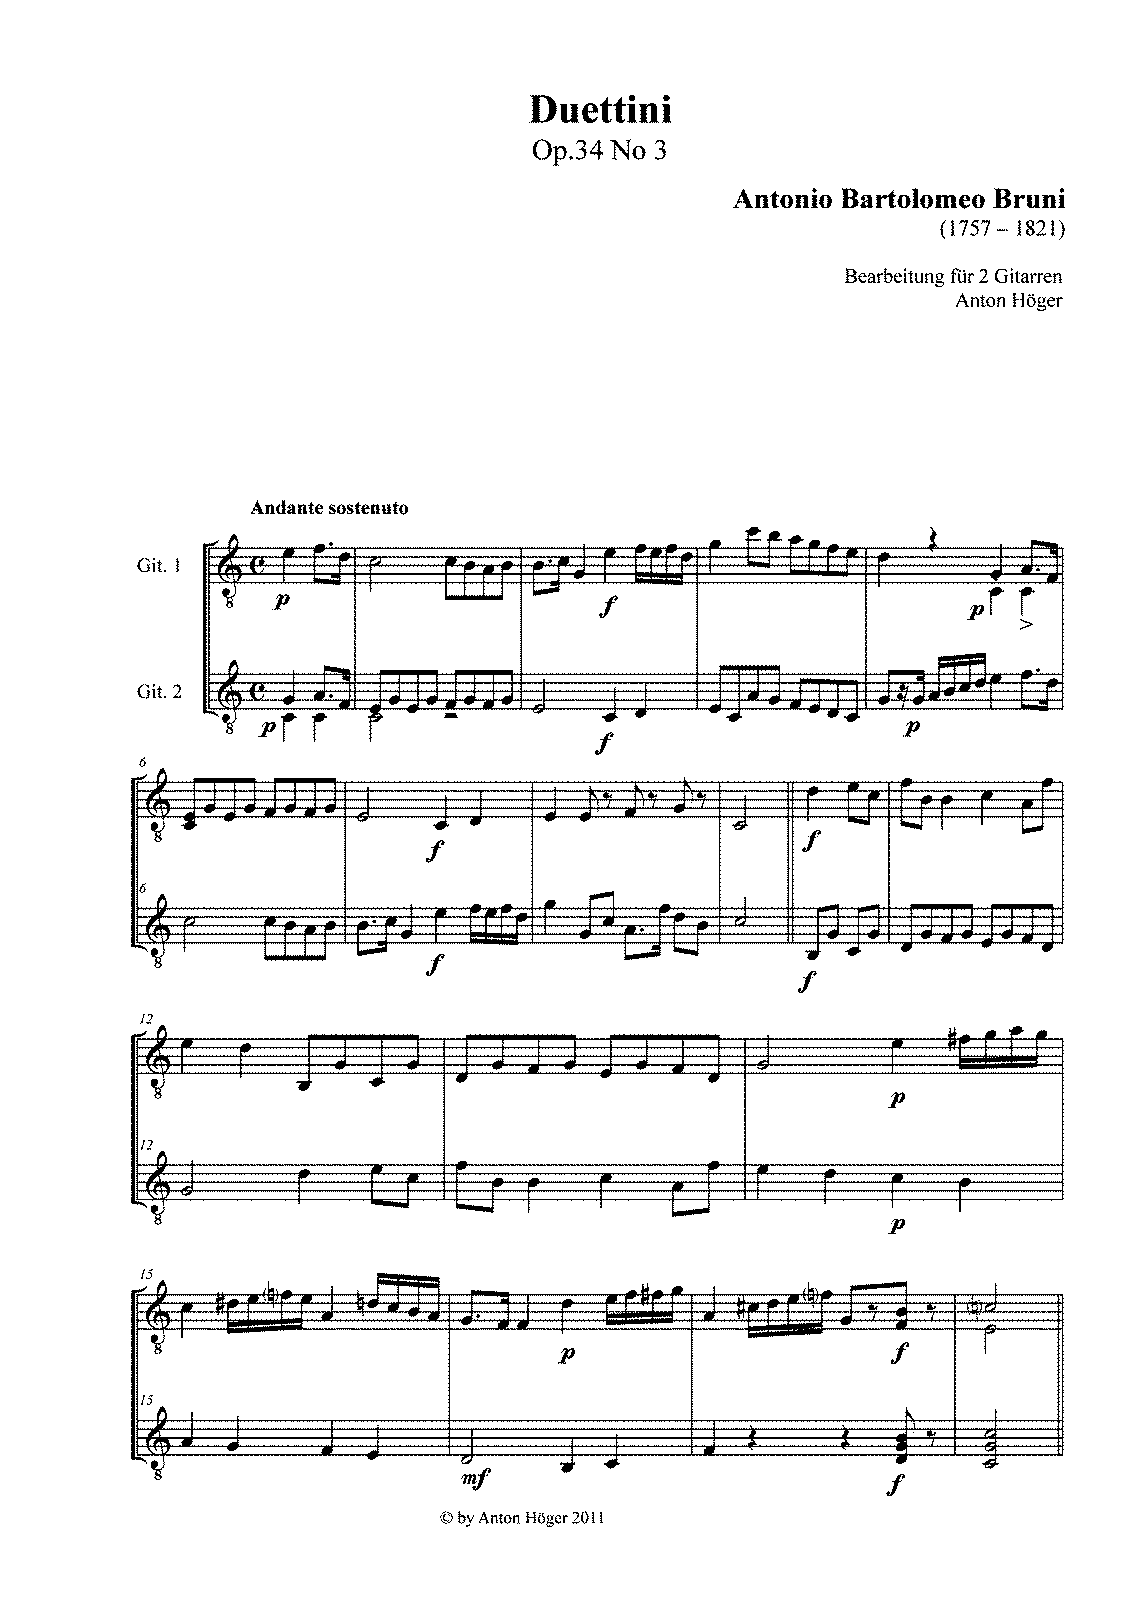 PMLP122884-Bruni, A.B. - Duettini Op.34 No3.pdf